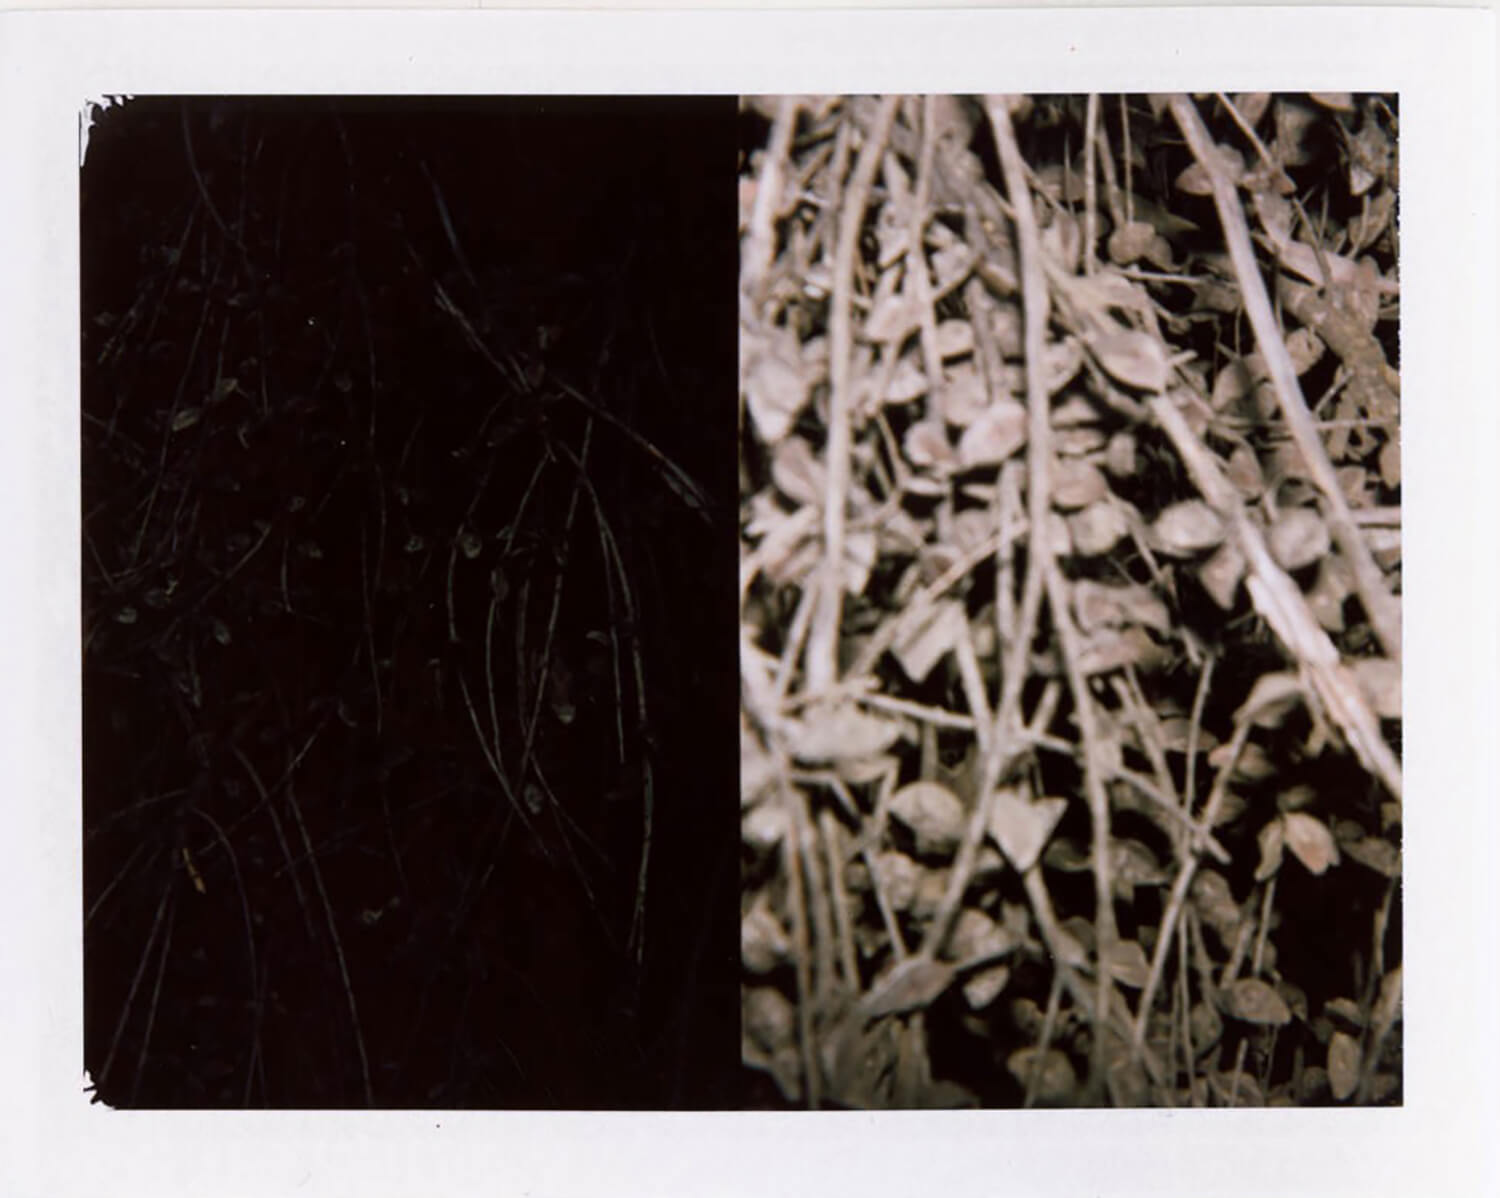 I.D.026, The Polaroid Revolutionary Workers, 2013, Polaroid Picture, 107mm x 86mm